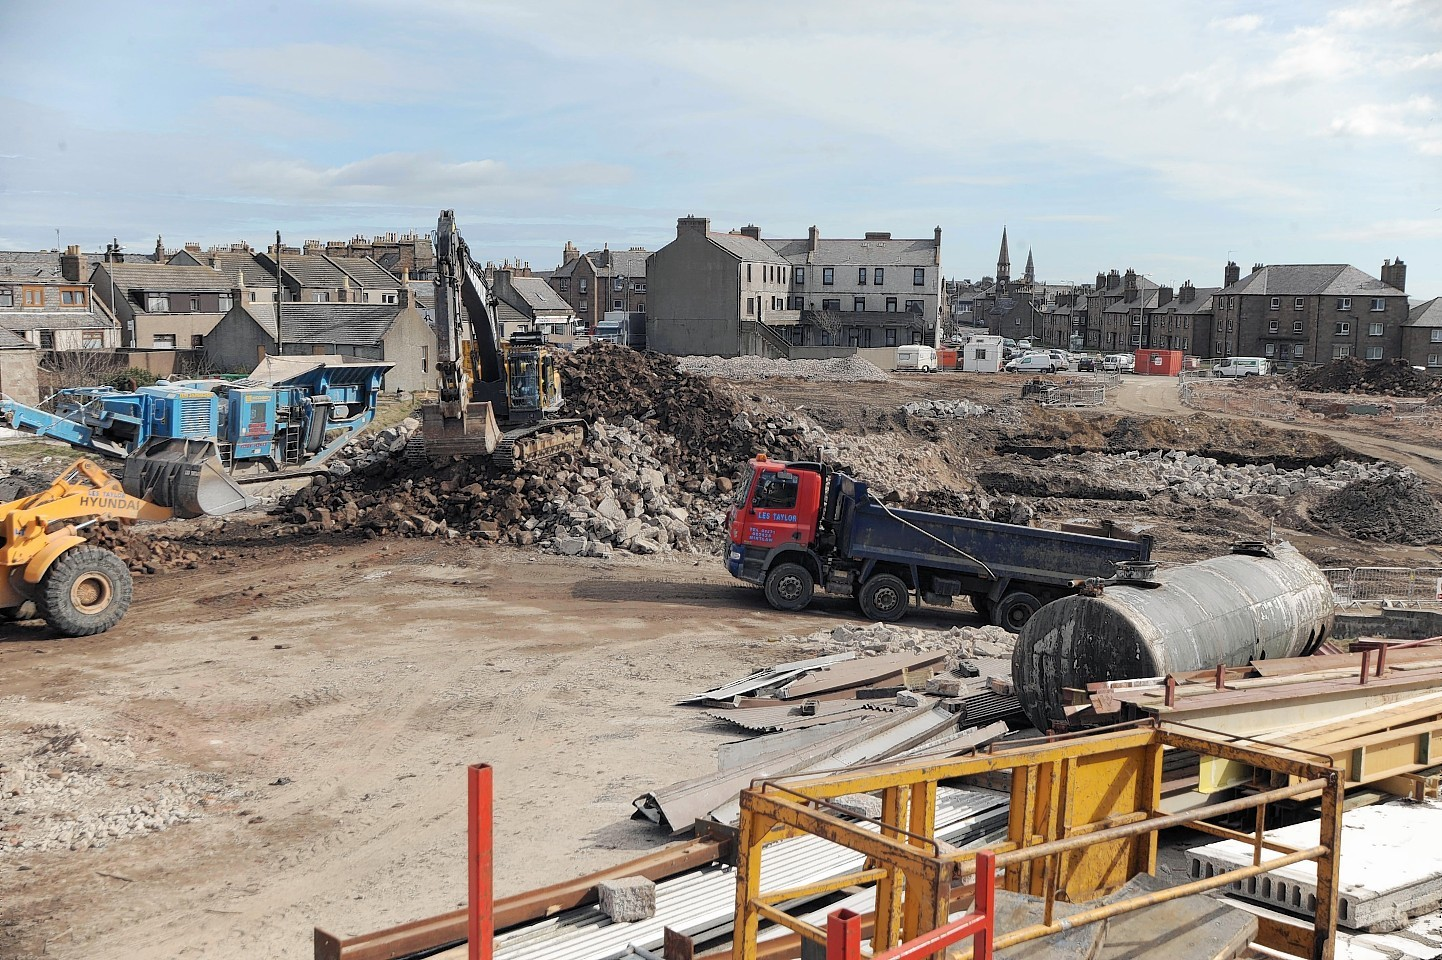 The Kirkburn Mill was demolished but work has yet to begin on a new supermarket